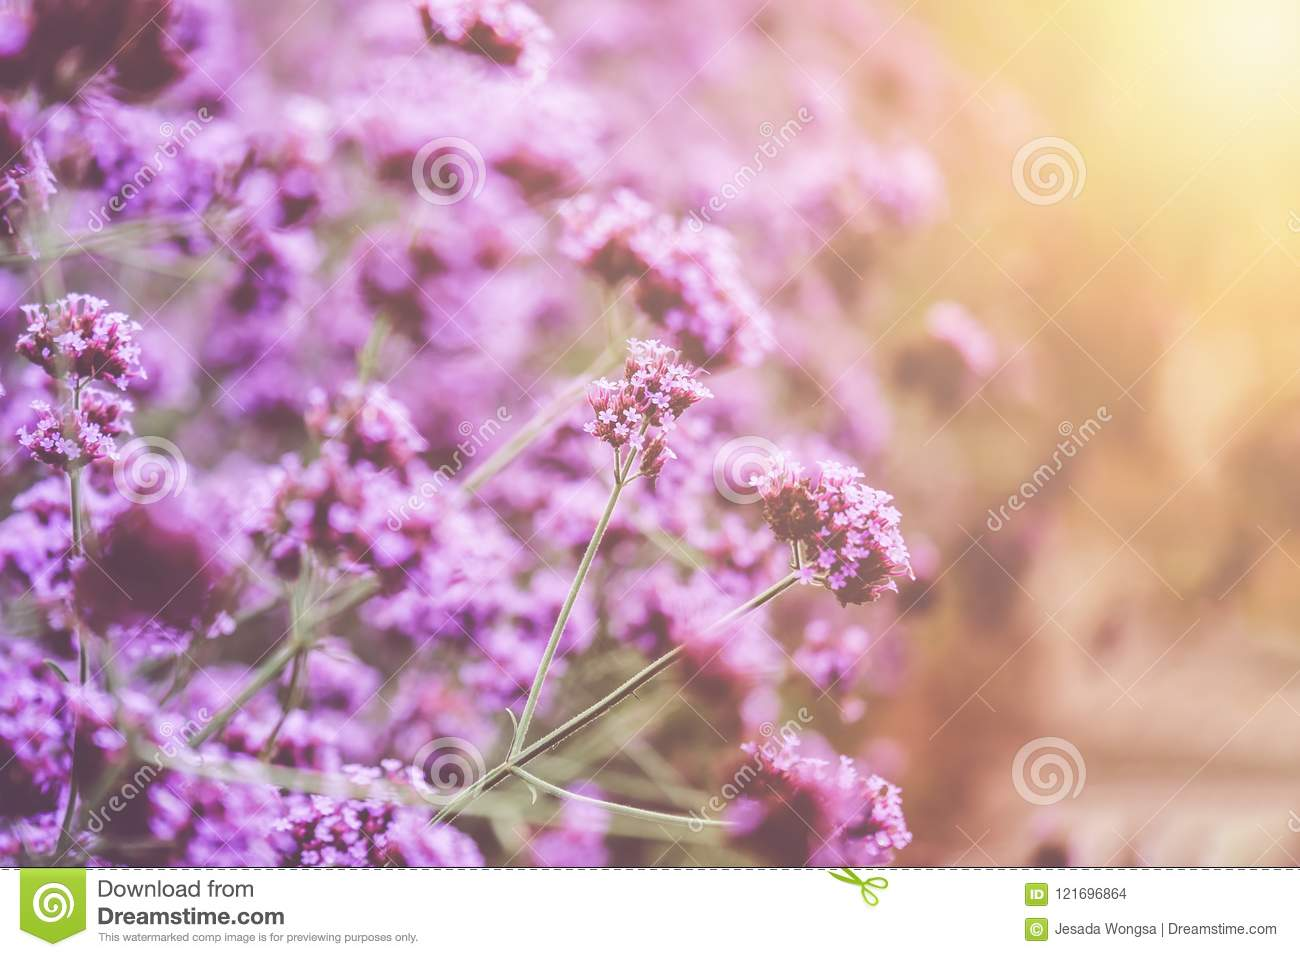 Blurred Of Verbena Bonariensis Is A Perennial Plant That Flowers In